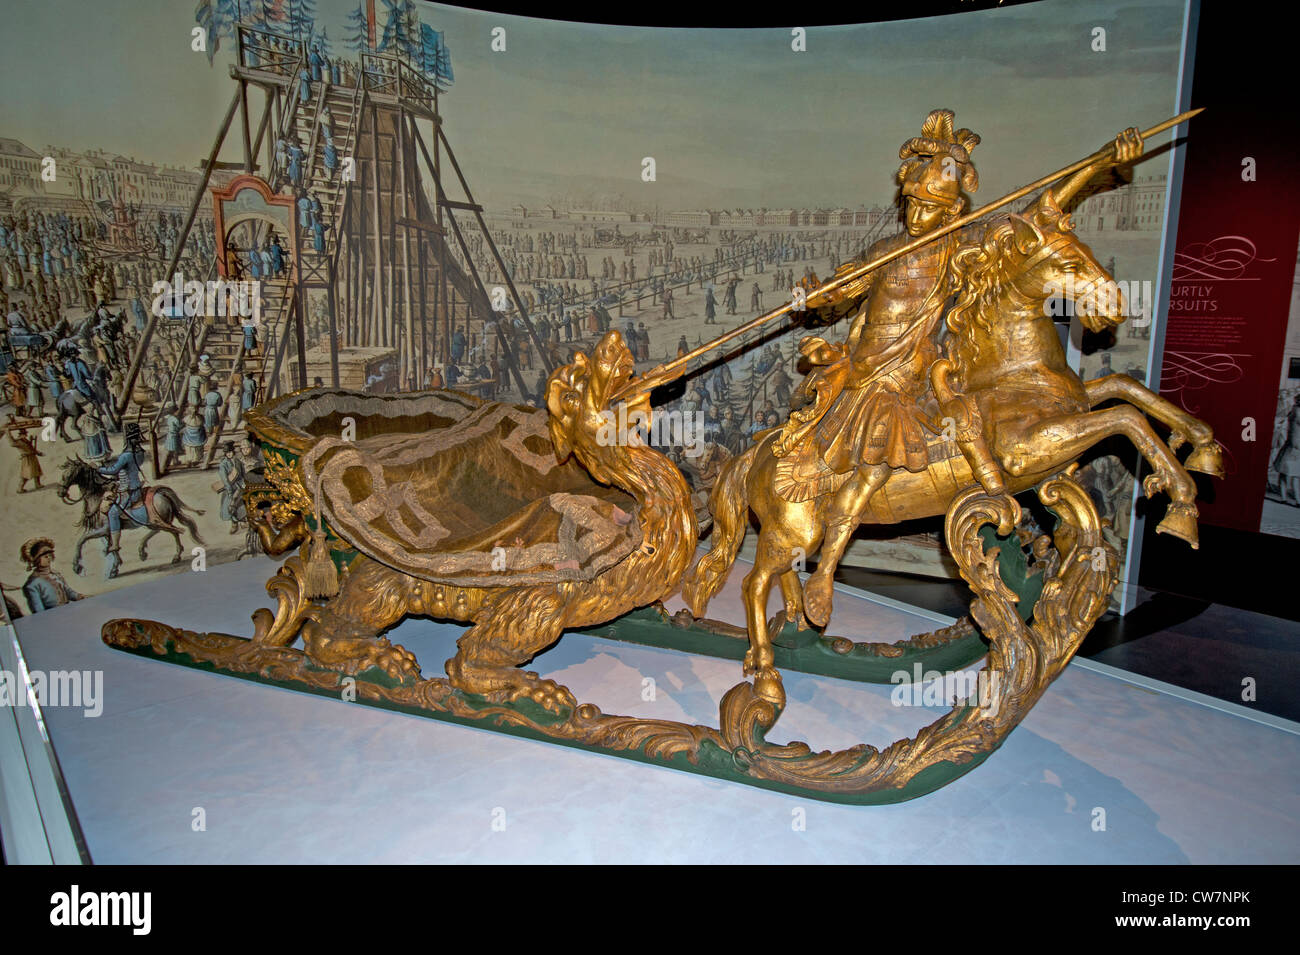 The Carnival Sledge used by Catherine the Great as part of the Winter festival proceedings. SCO 8307 Stock Photo